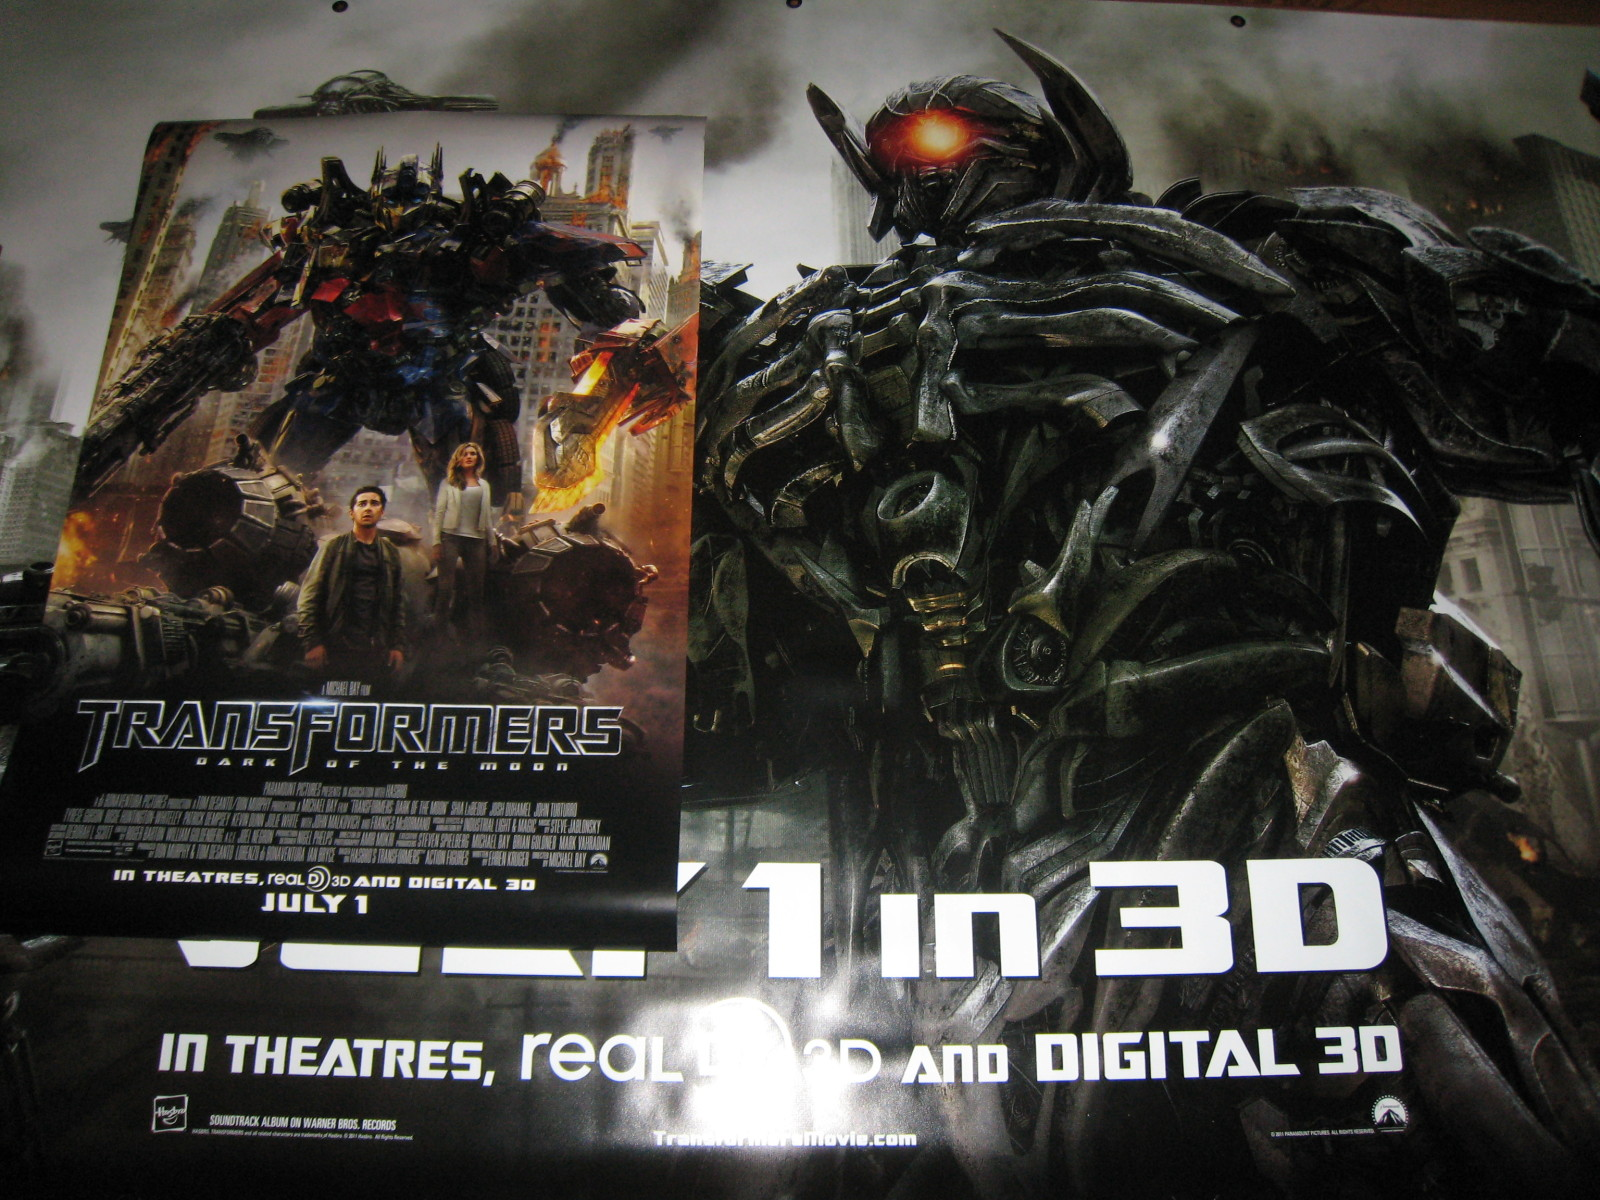 TRANSFORMERS 3: Face cachée de la lune (2011) - Spoiler/Rumeurs [page 3] - Page 5 Transformers-3-Dark-of-the-Moon-Posters-Banners_1305086926